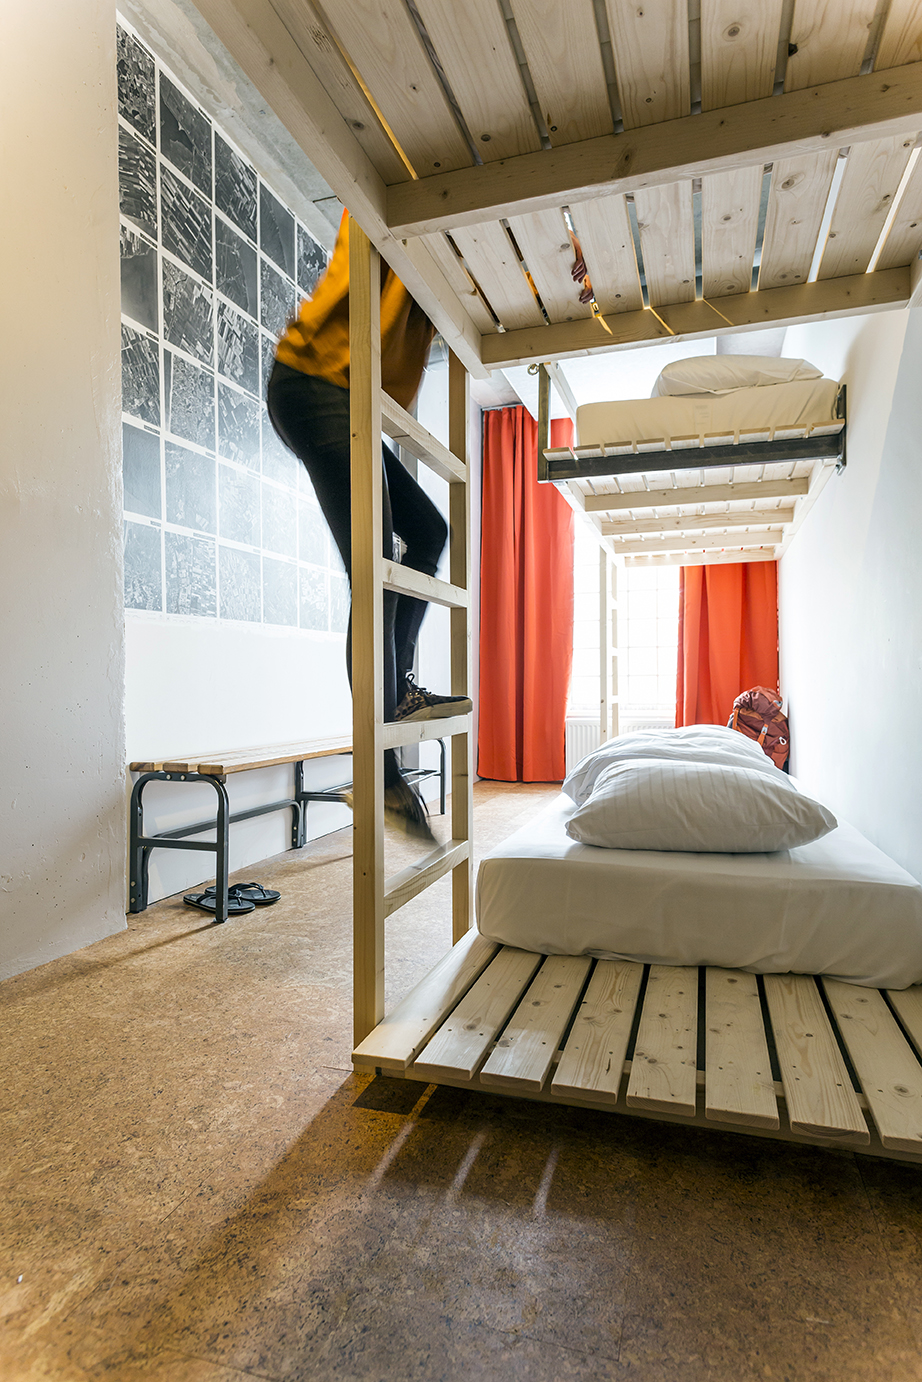 Hipster 5-Bed Dorm Ecomama Amsterdam Boutique Hostel